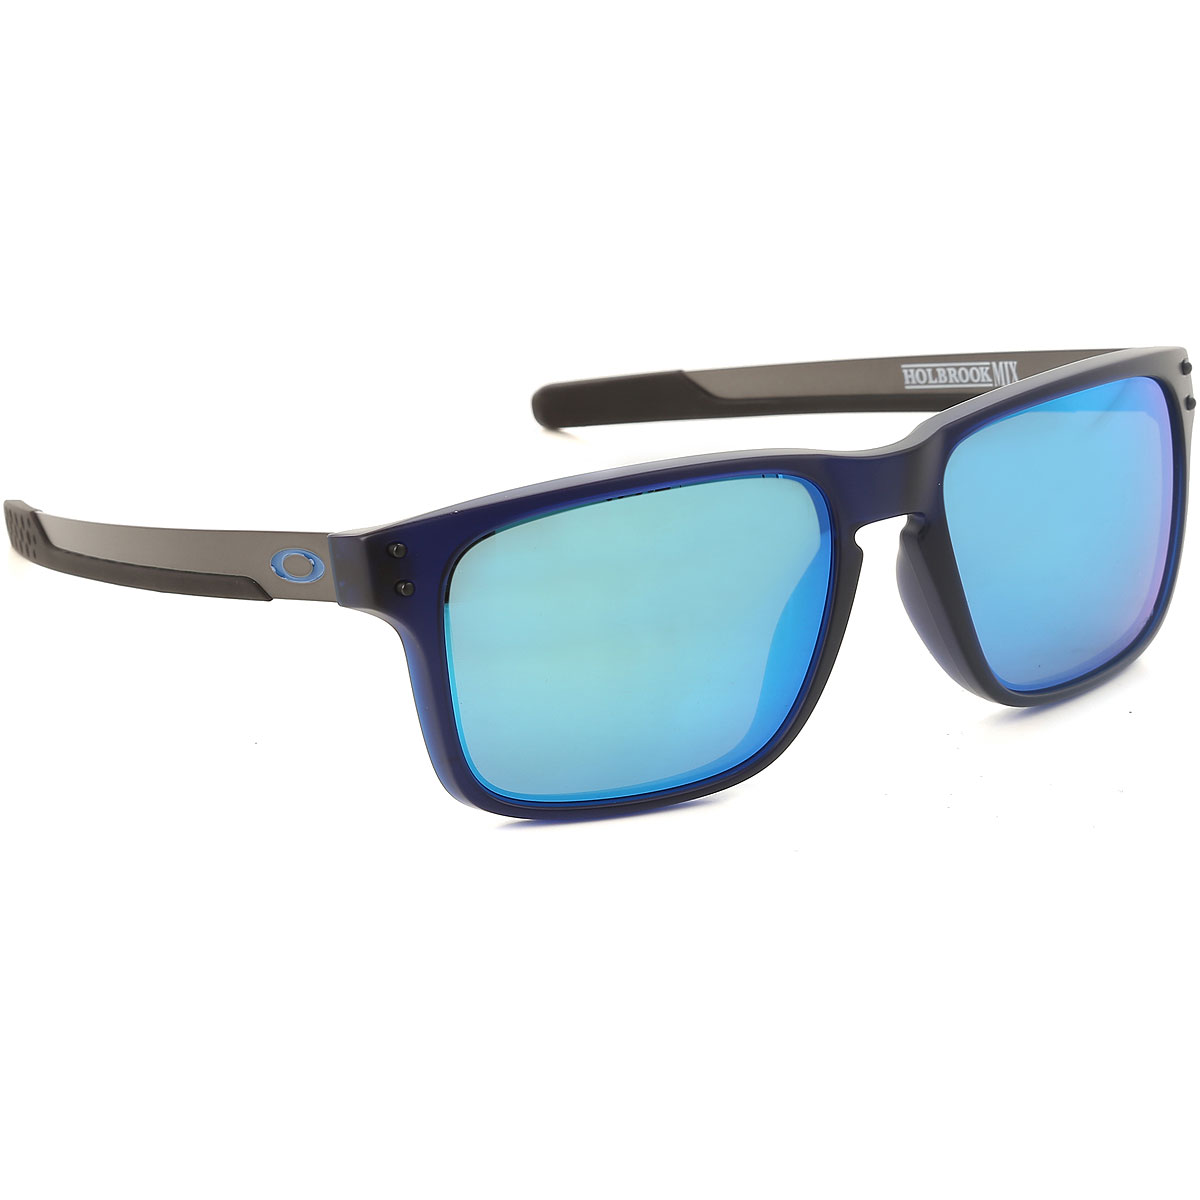 Image of Oakley Sunglasses On Sale, Blue, 2017